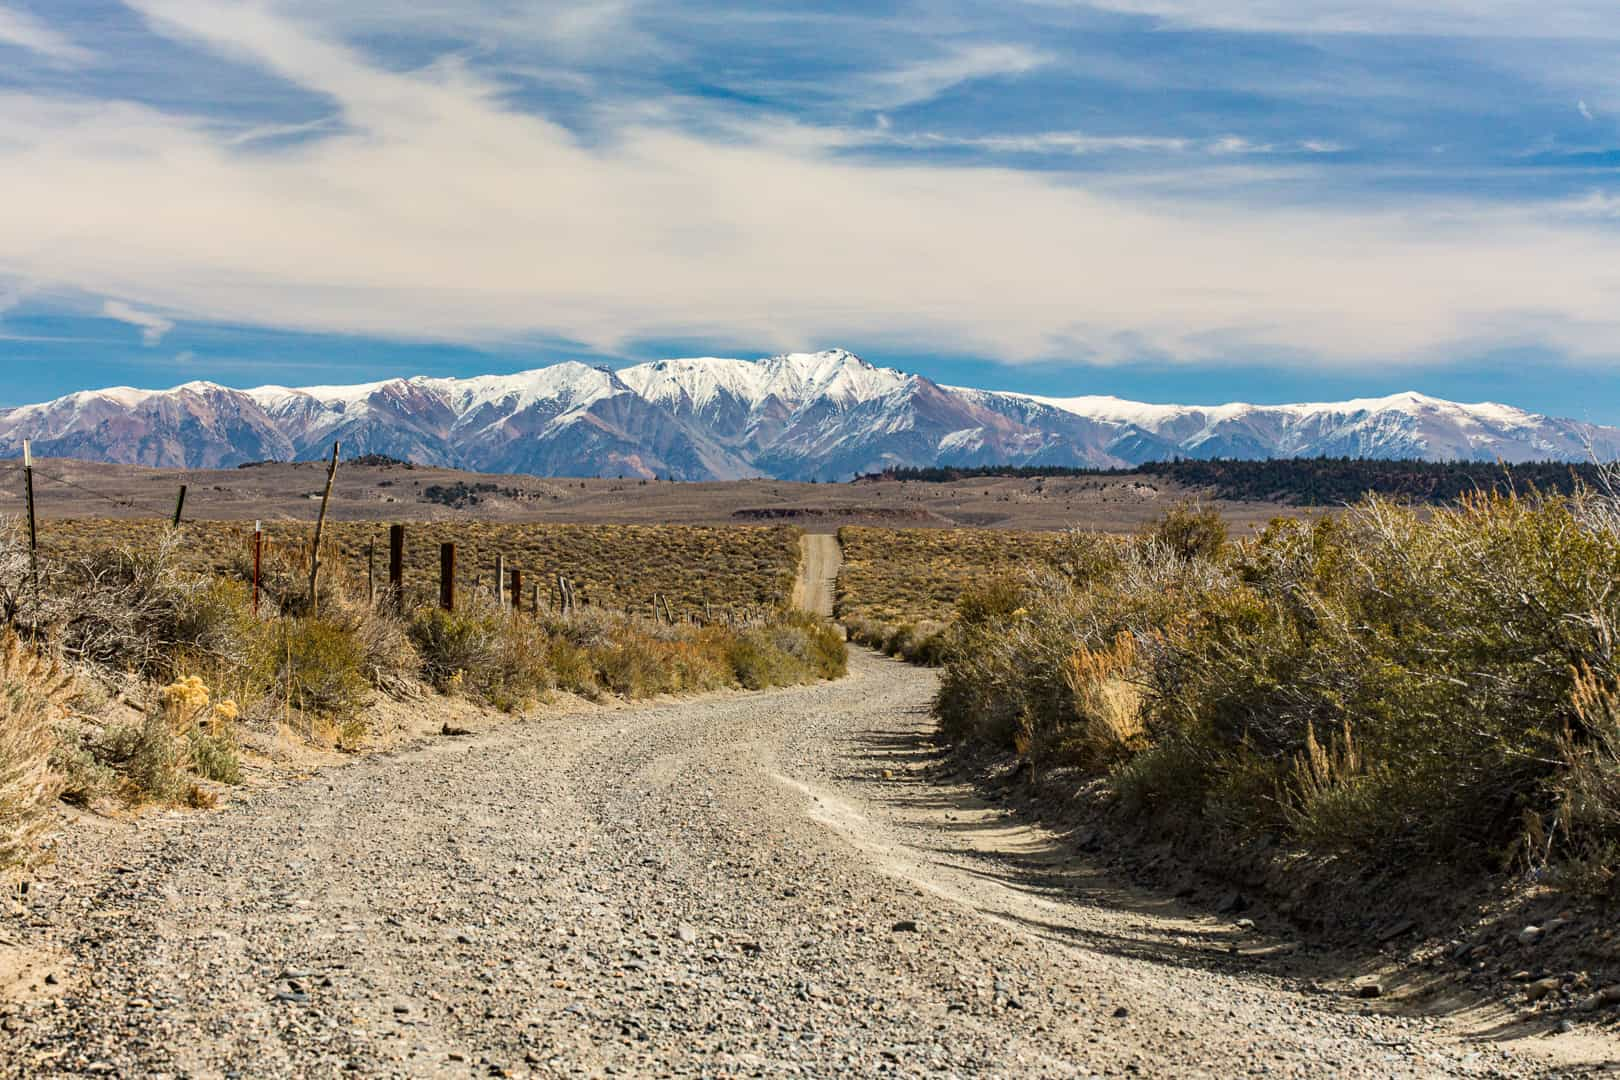 Road & White Mountains, Long Valley, October 2015